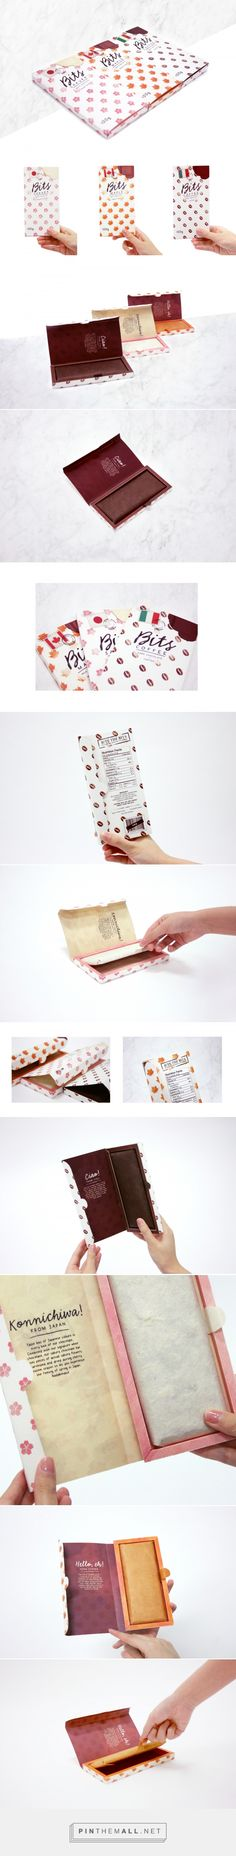 Bits Chocolate Bars (Student Project) - Packaging of the World - Creative Package Design Gallery - http://www.packagingoftheworld.com/2016/12/bits-chocolate-bars-student-project.html